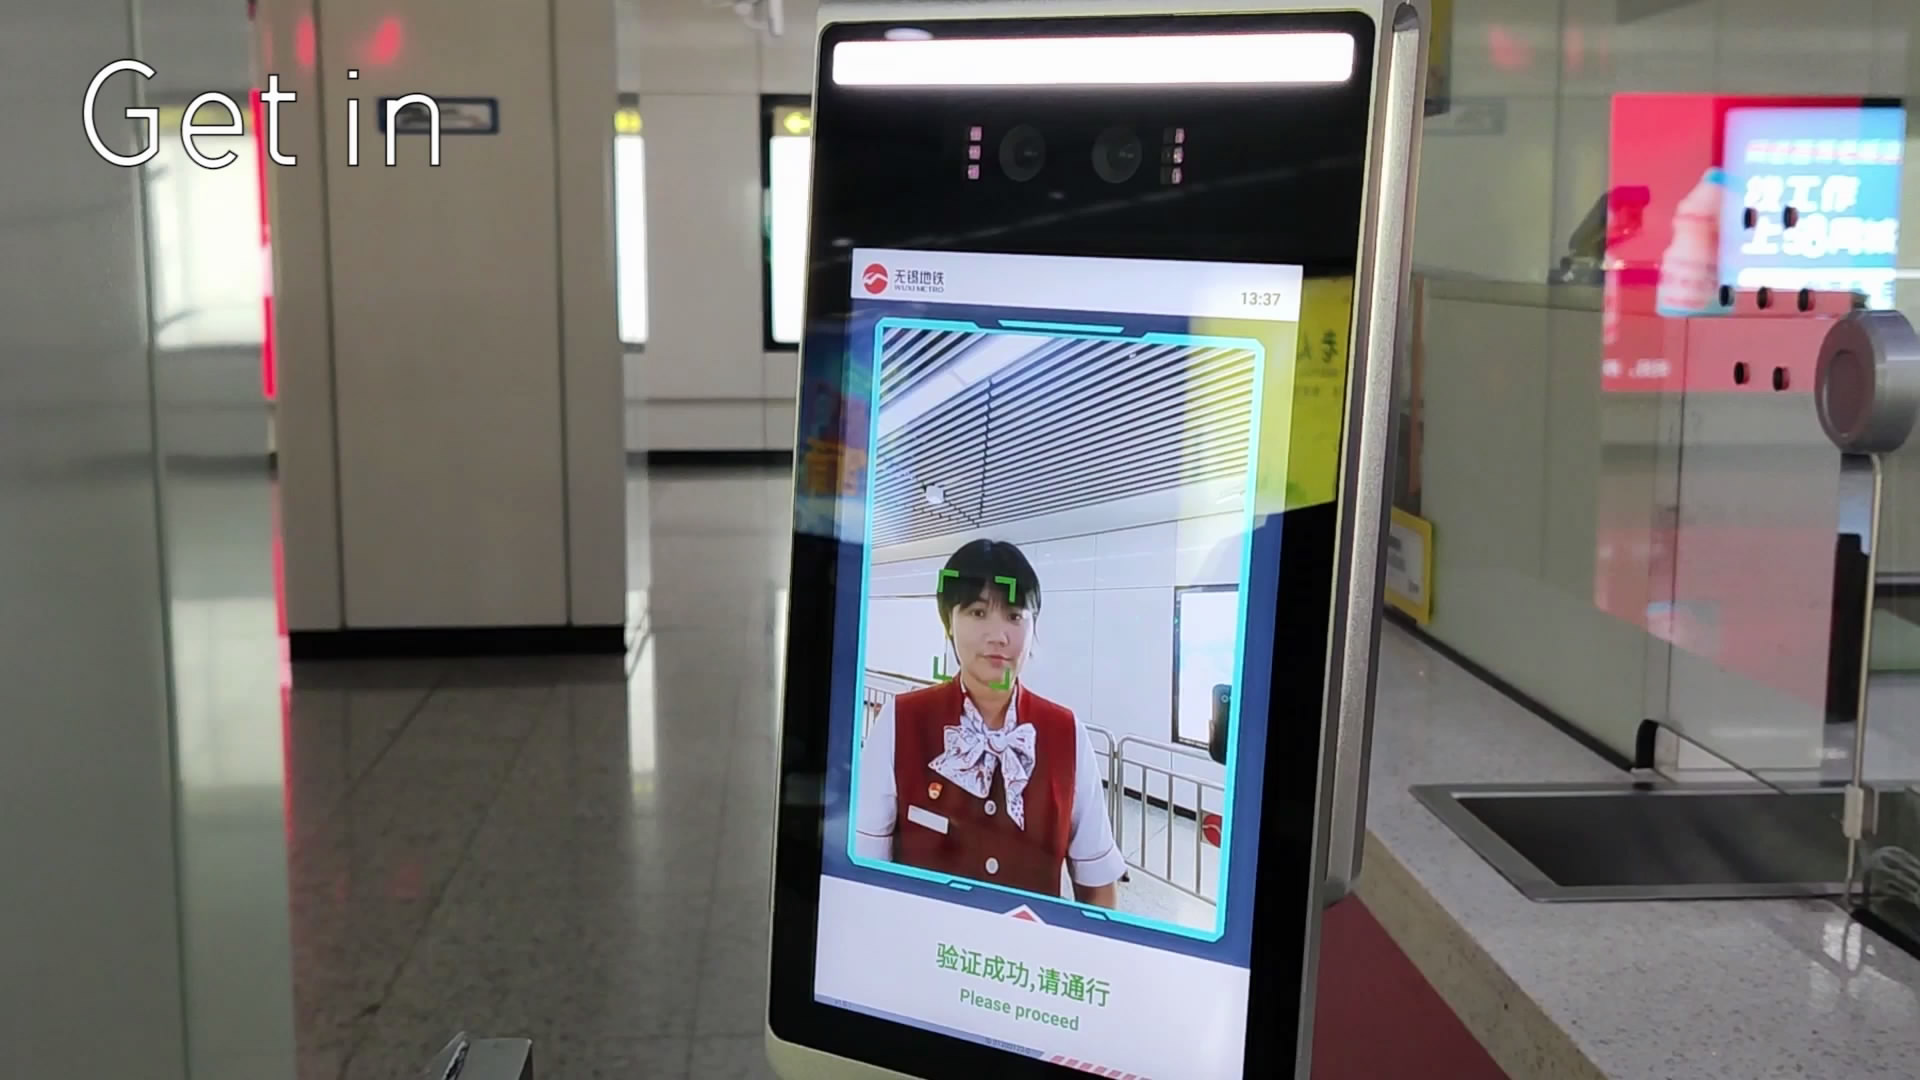 Take the subway in Wuxi by scanning your face